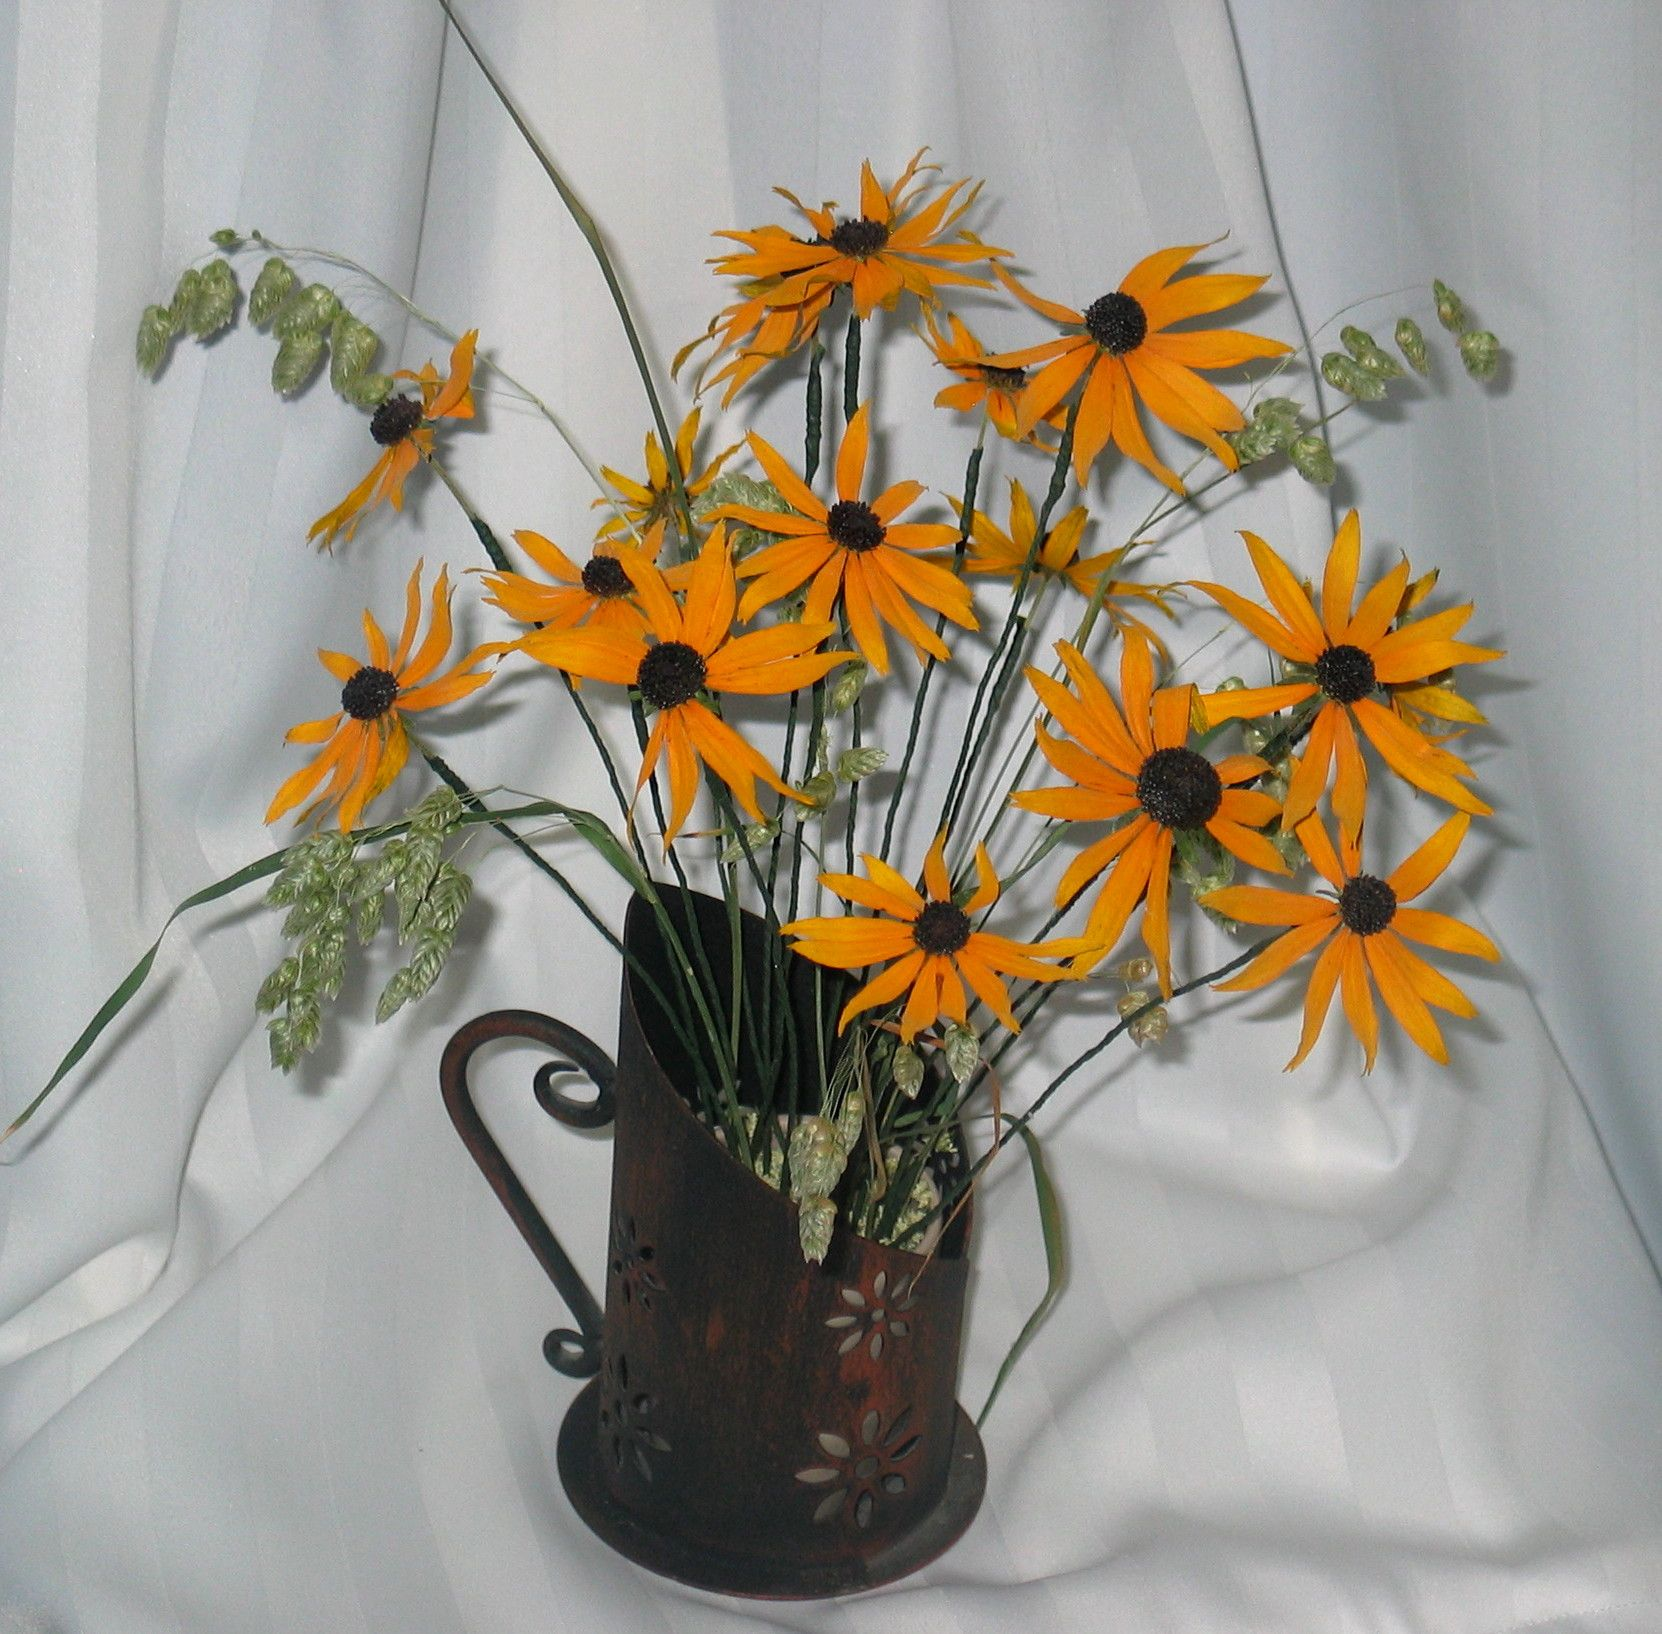 Blackeyed susans fill this old fashioned candle holders